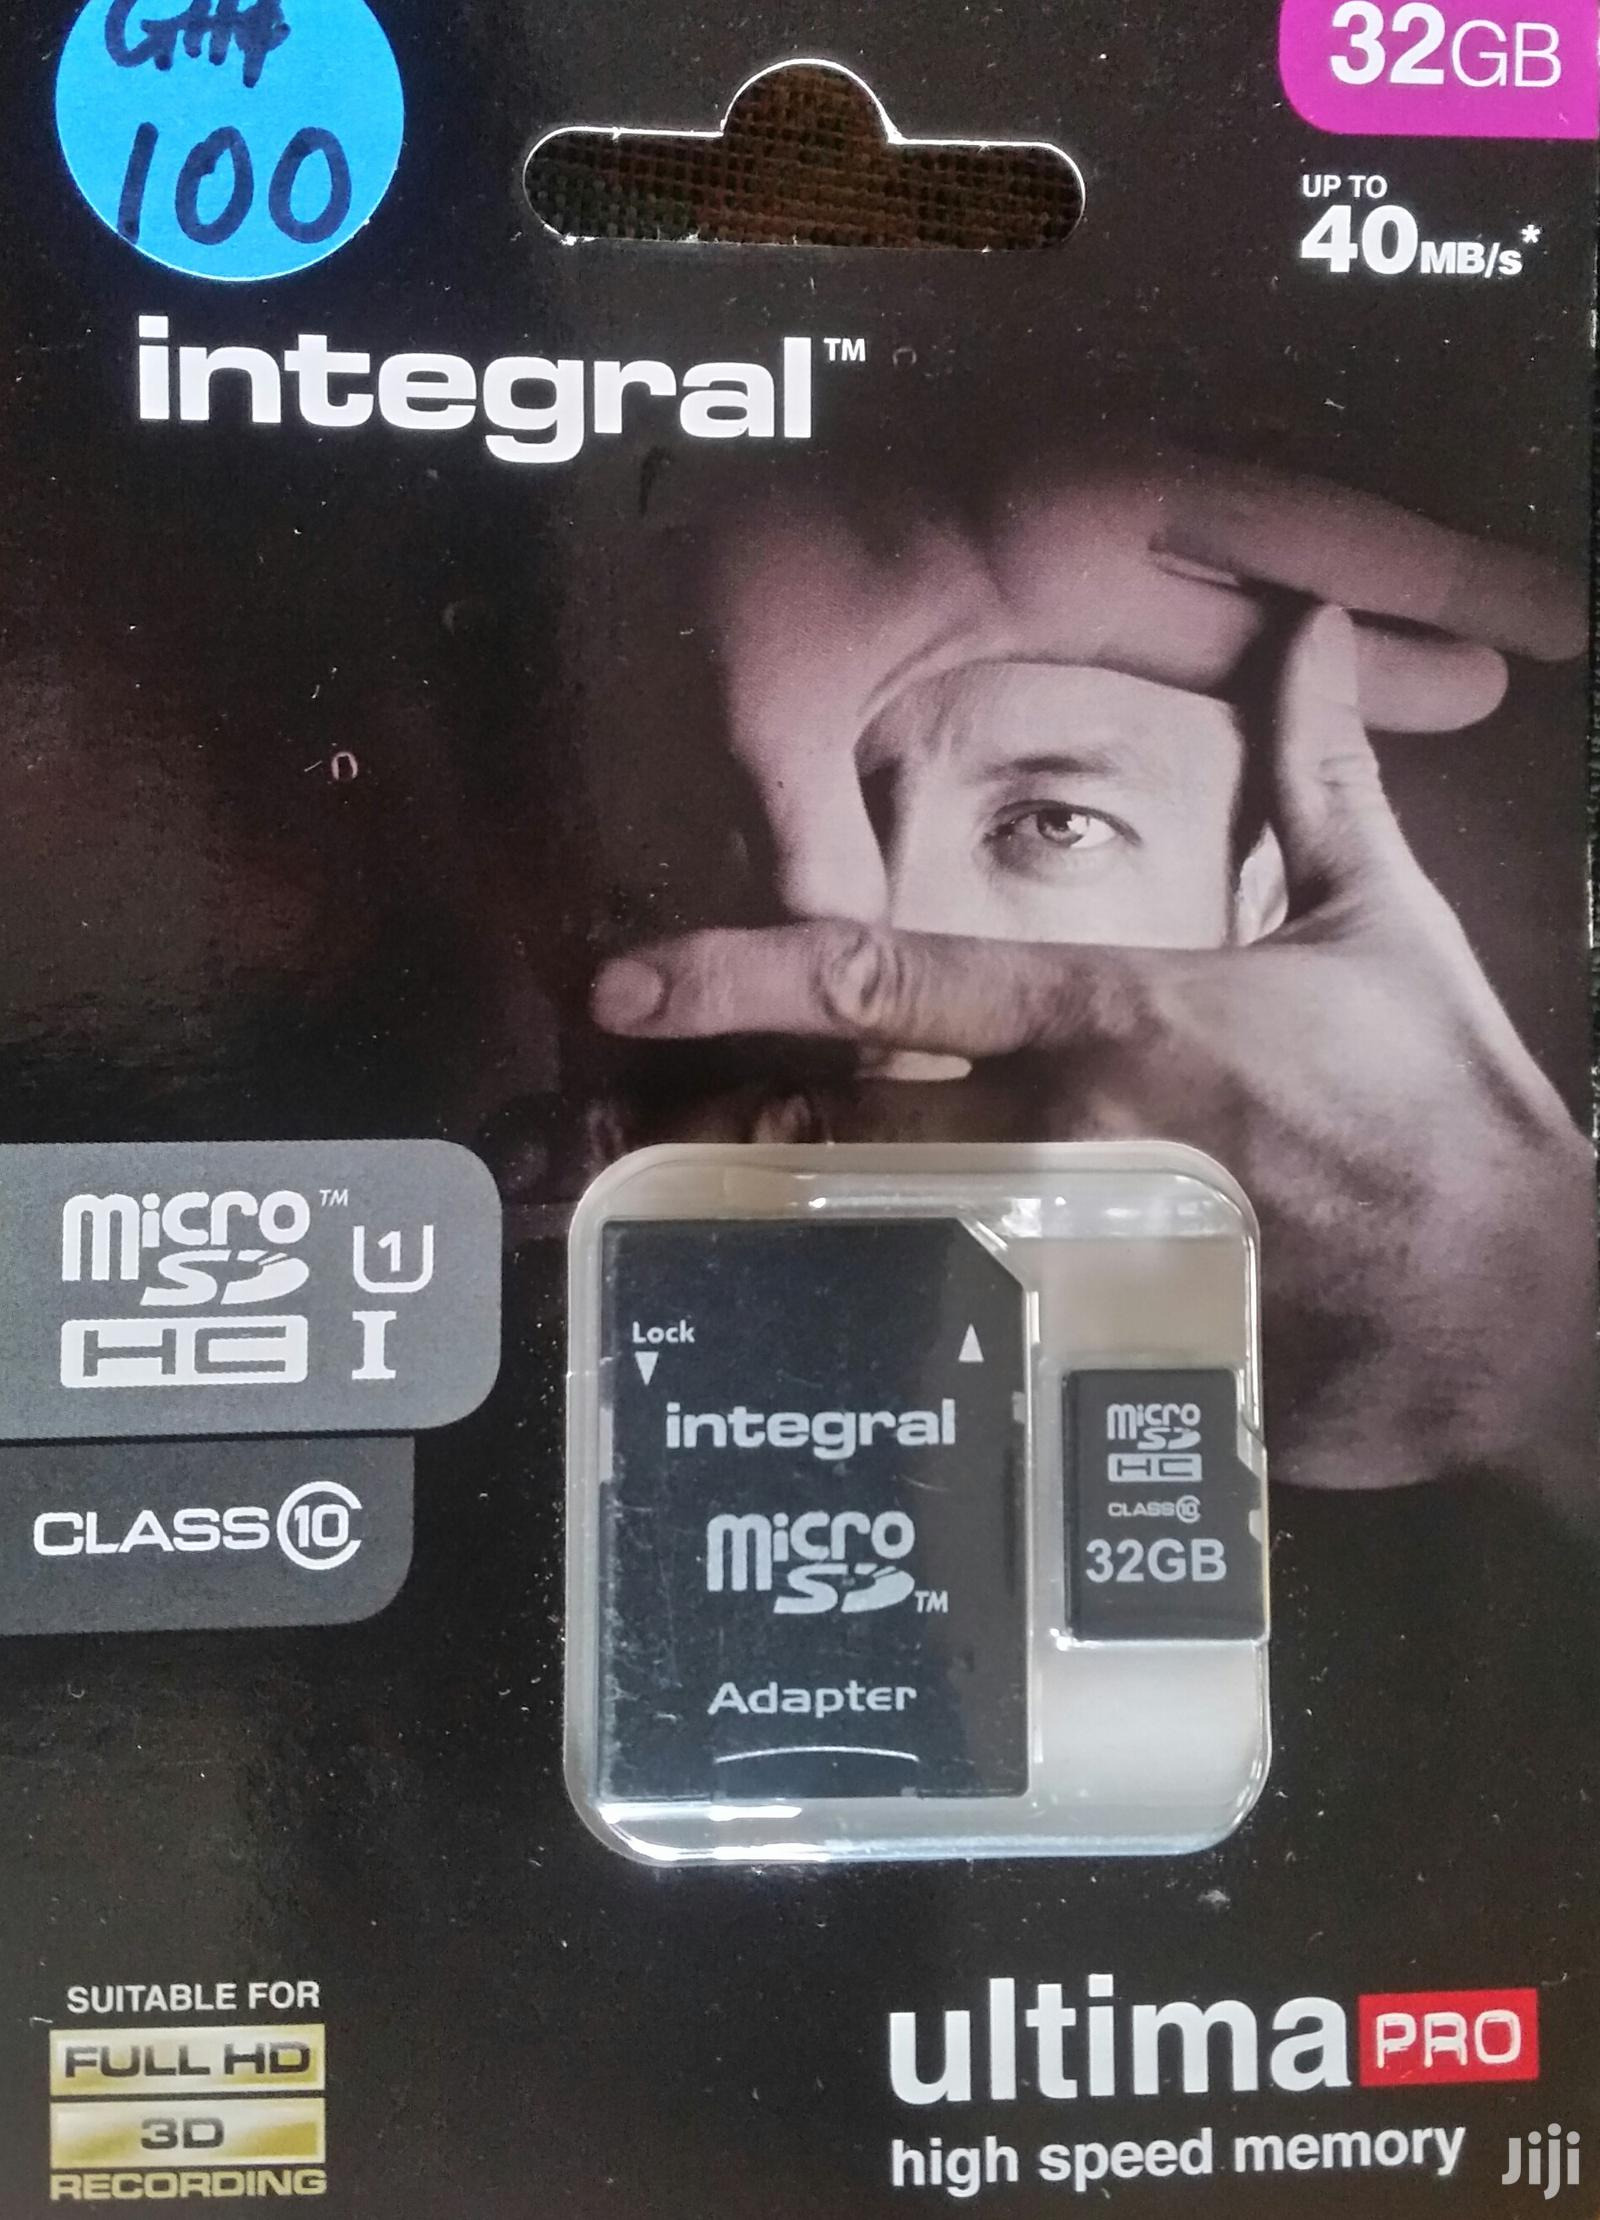 Adata And Integral 32gb Micro SD Cards From UK | Accessories for Mobile Phones & Tablets for sale in North Labone, Greater Accra, Ghana